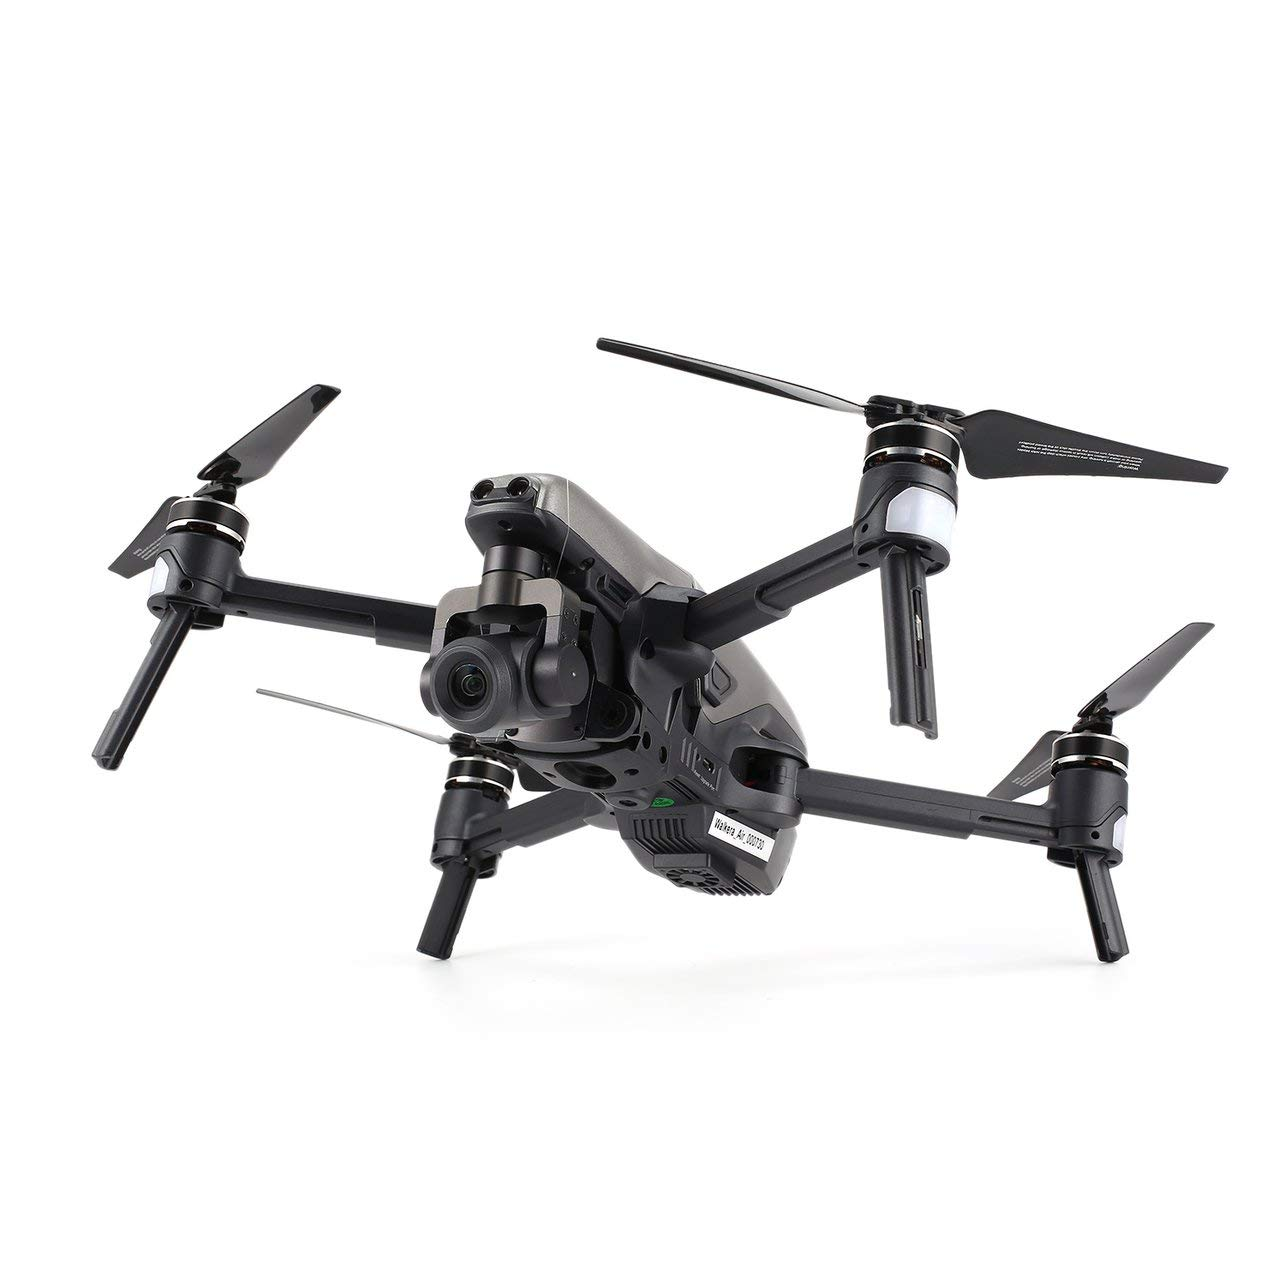 WOSOSYEYO Walkera Vitus 320 Folding 4K Camera 5.8G FPV 3-Axis Gimbal GPS RC Drone Quadcopter Black-Gray